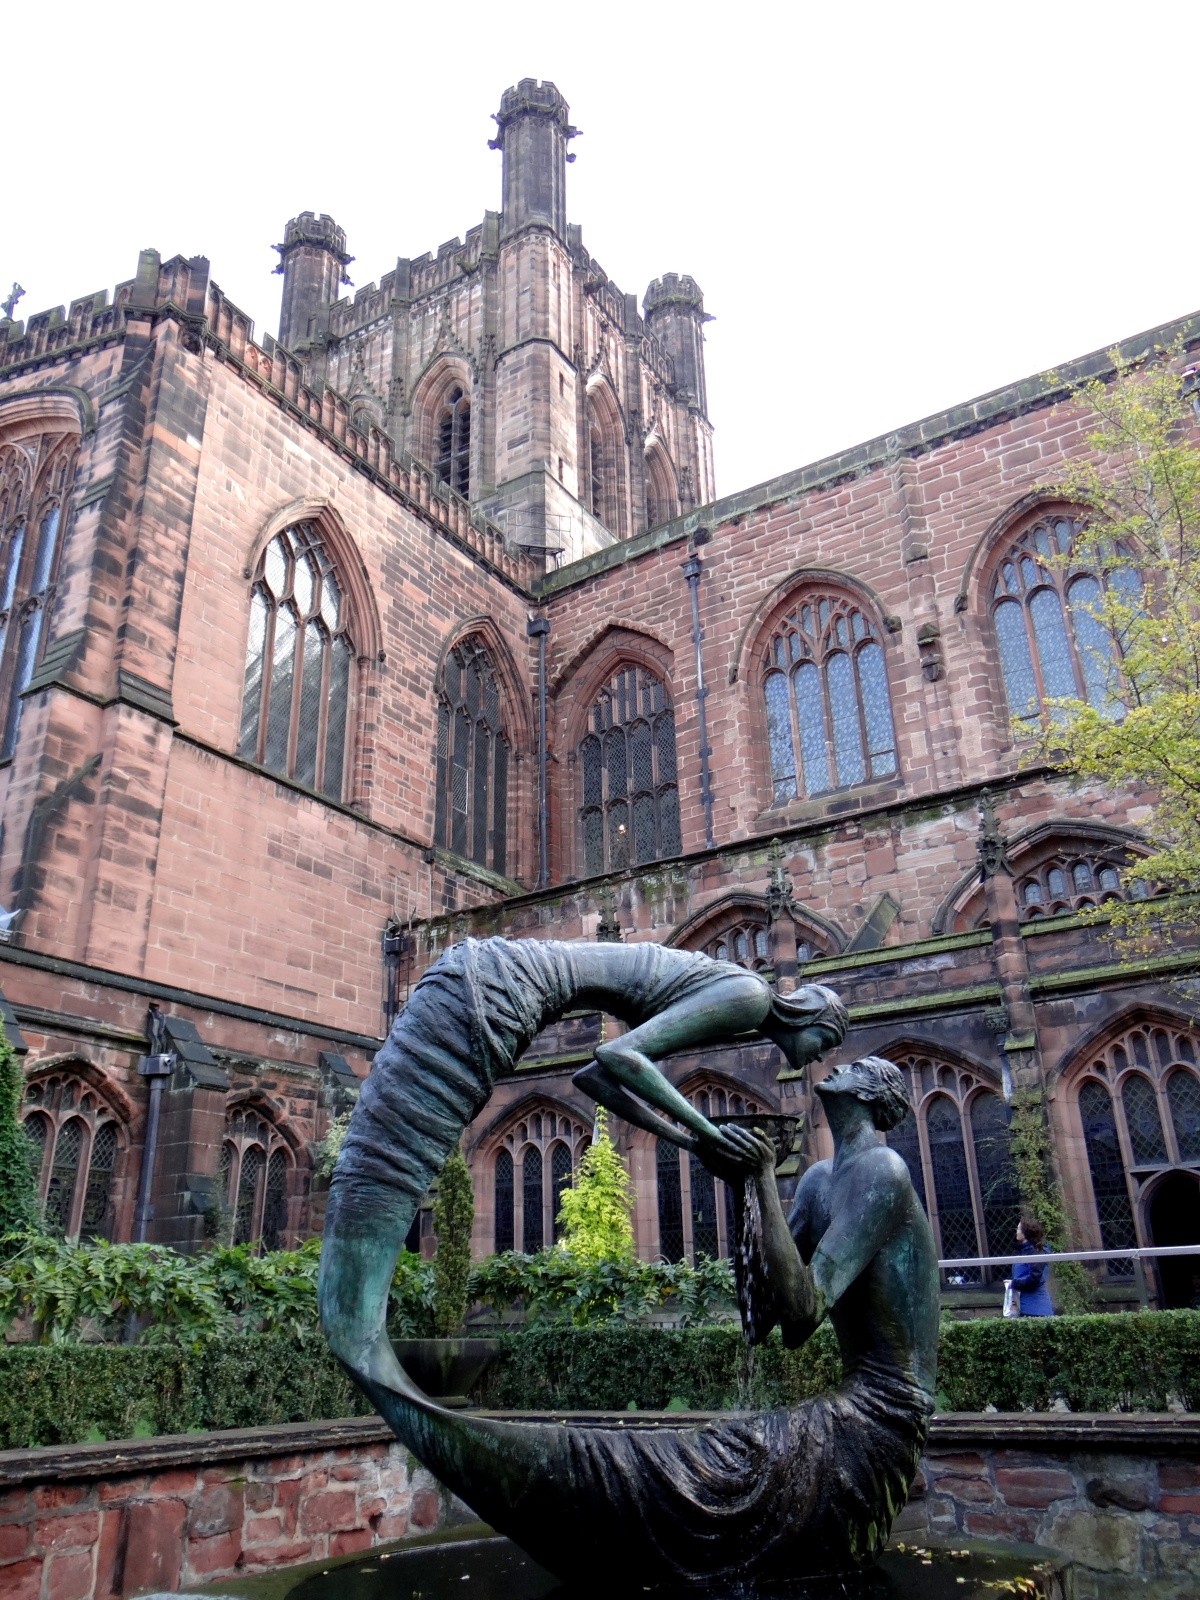 The Medieval Cathedral of Chester, England close to the border of Wales.